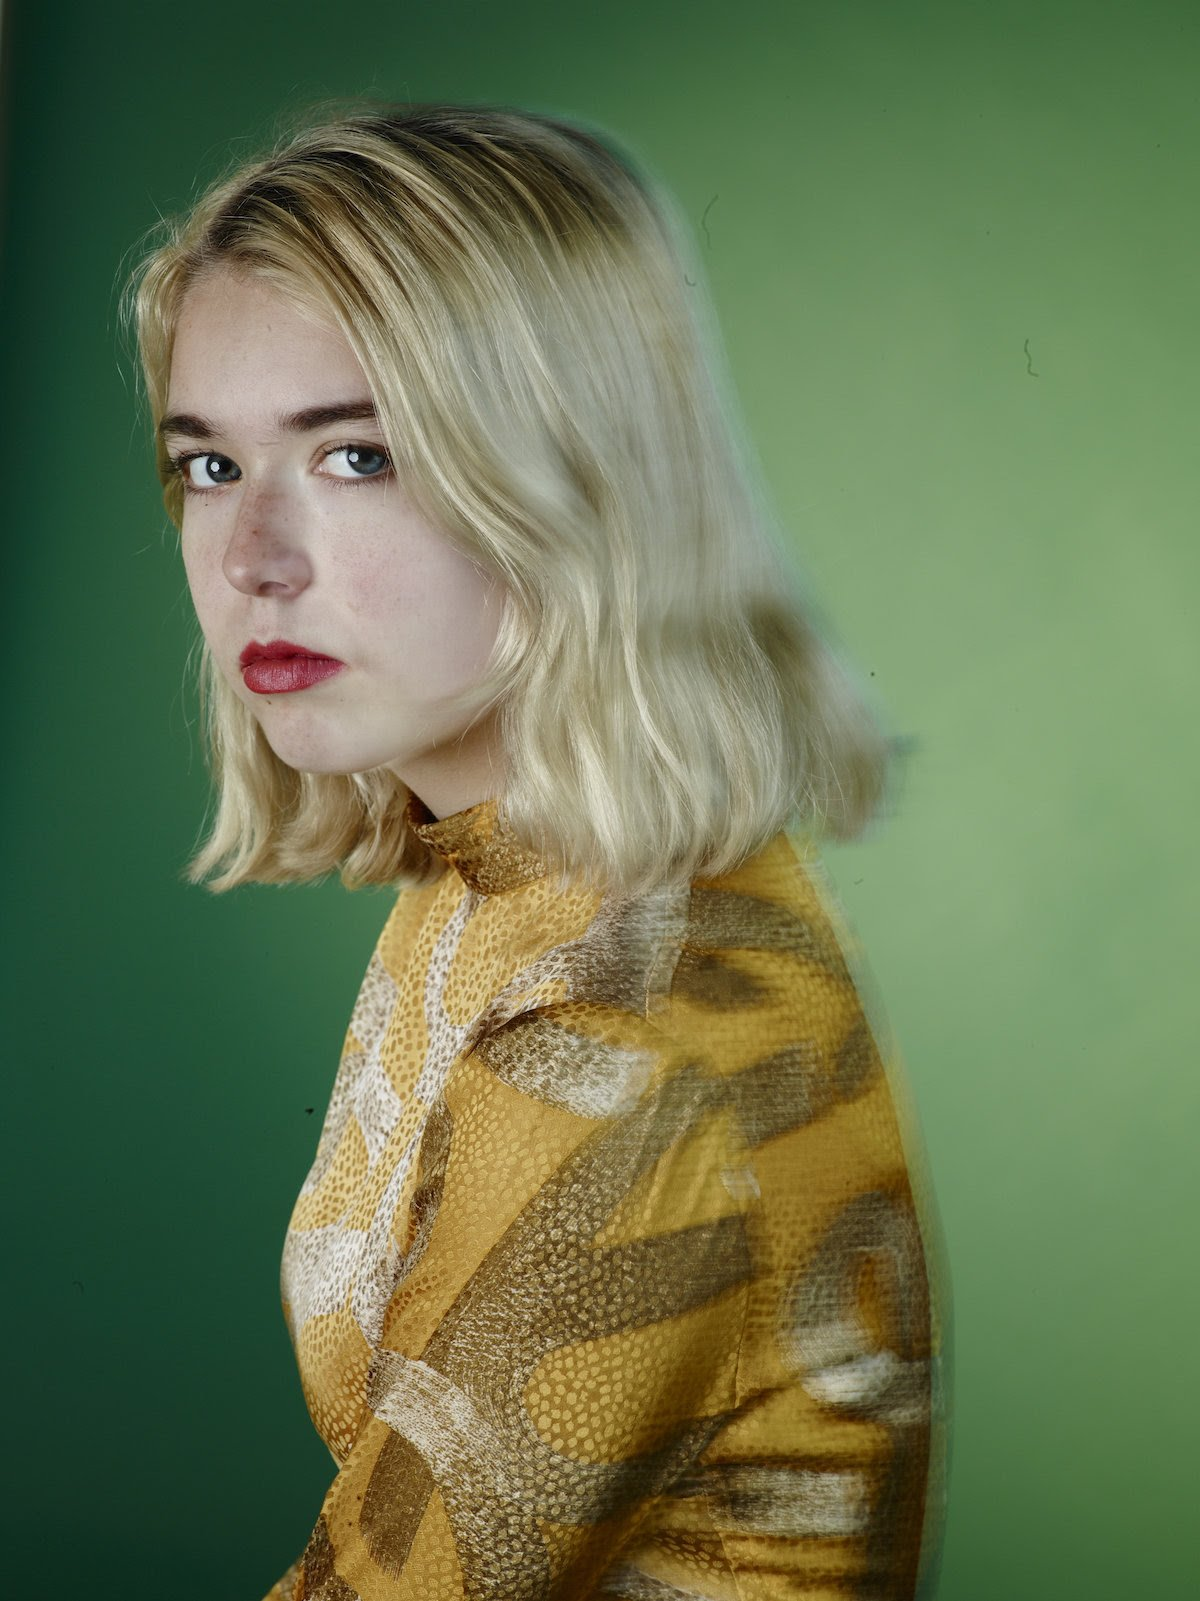 """.@Snailmailband shares new song """"Let's Find An Out."""" https://t.co/tk9O8ER6K7 https://t.co/762GYARqqq"""